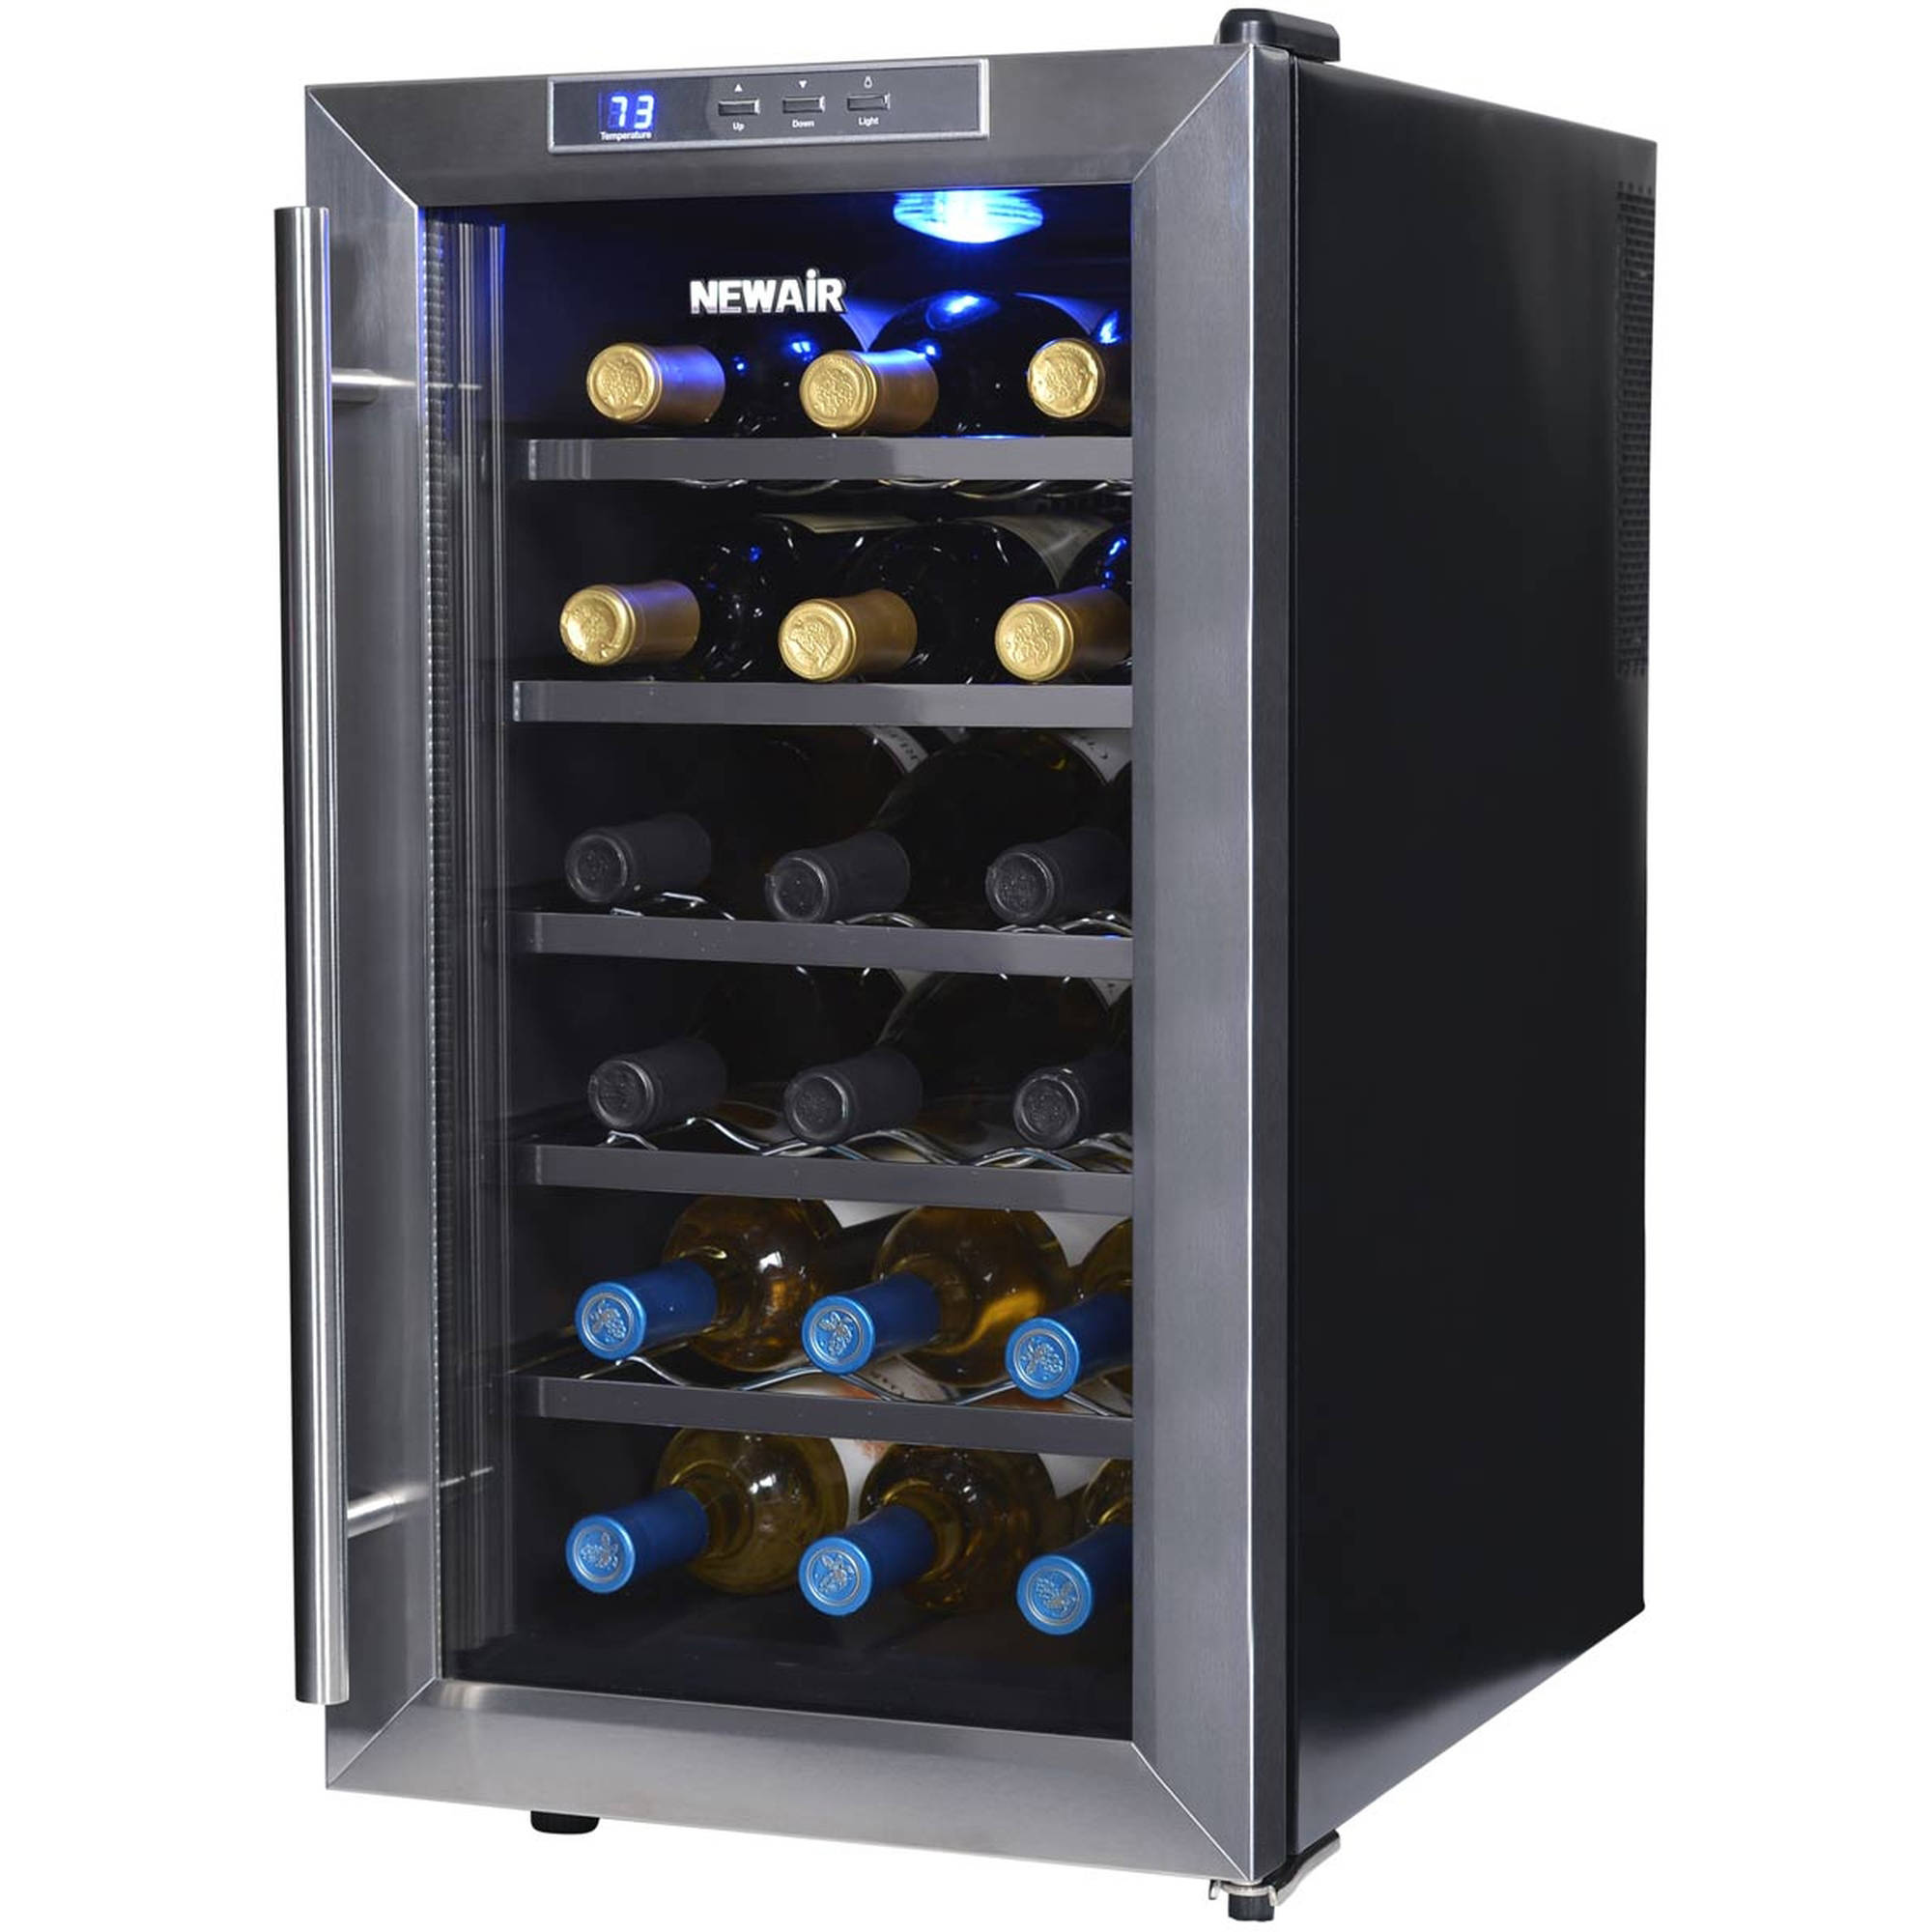 Newair Aw 181e 18 Bottle Thermoelectric Wine Refrigerator